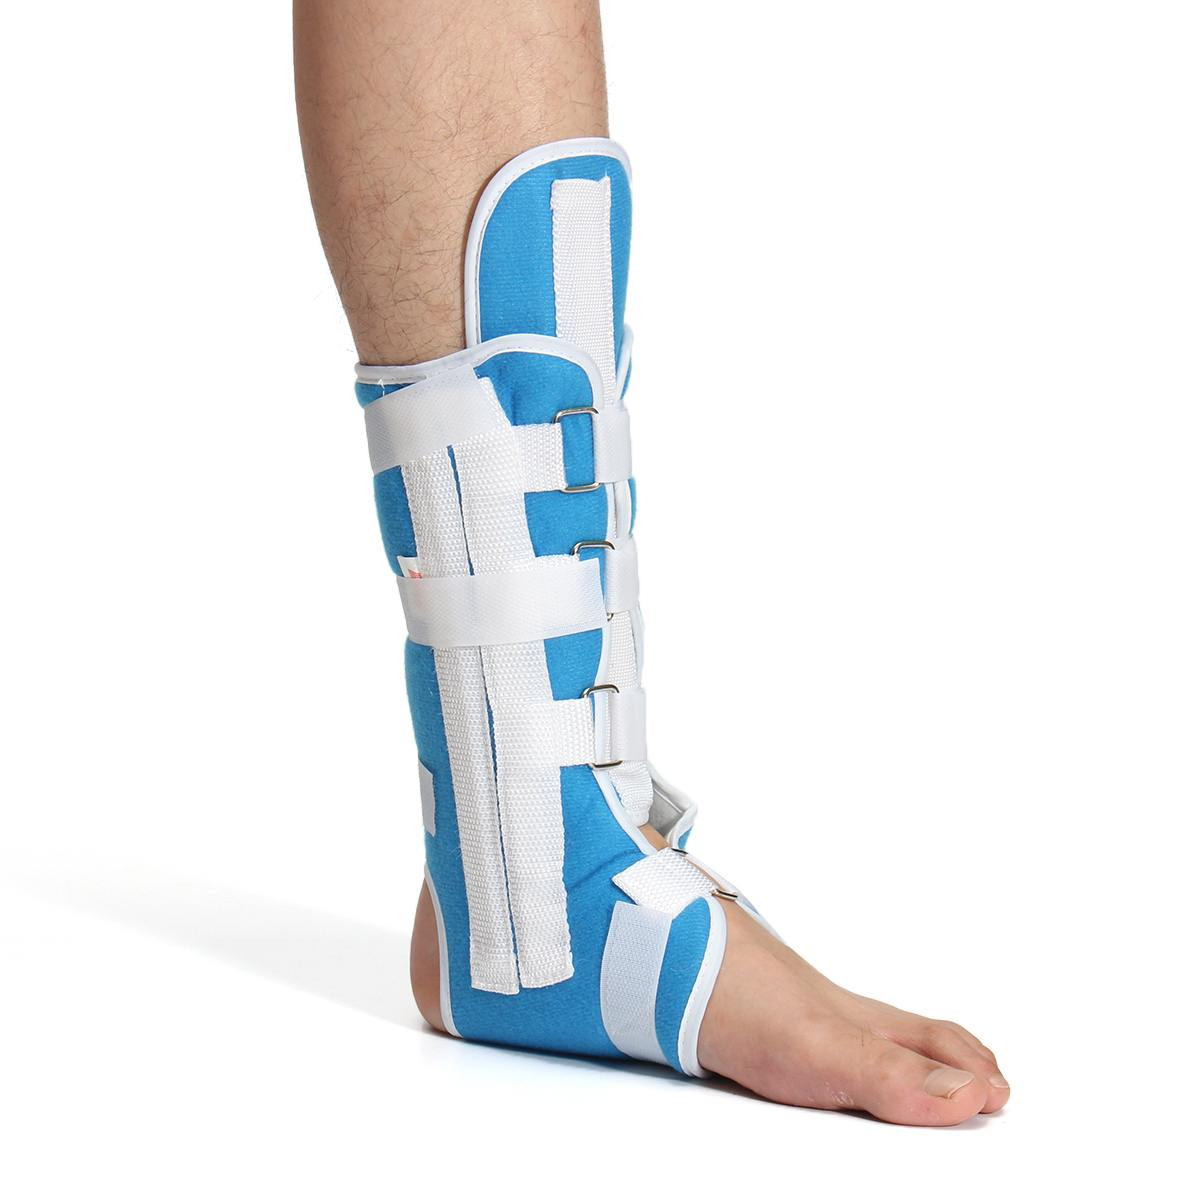 Ankle Brace Support Foot Drop Splint Guard Sprain Orthosis Fractures Ankle Braces For First Aid Plantar Fasciitis Heel Pain 2